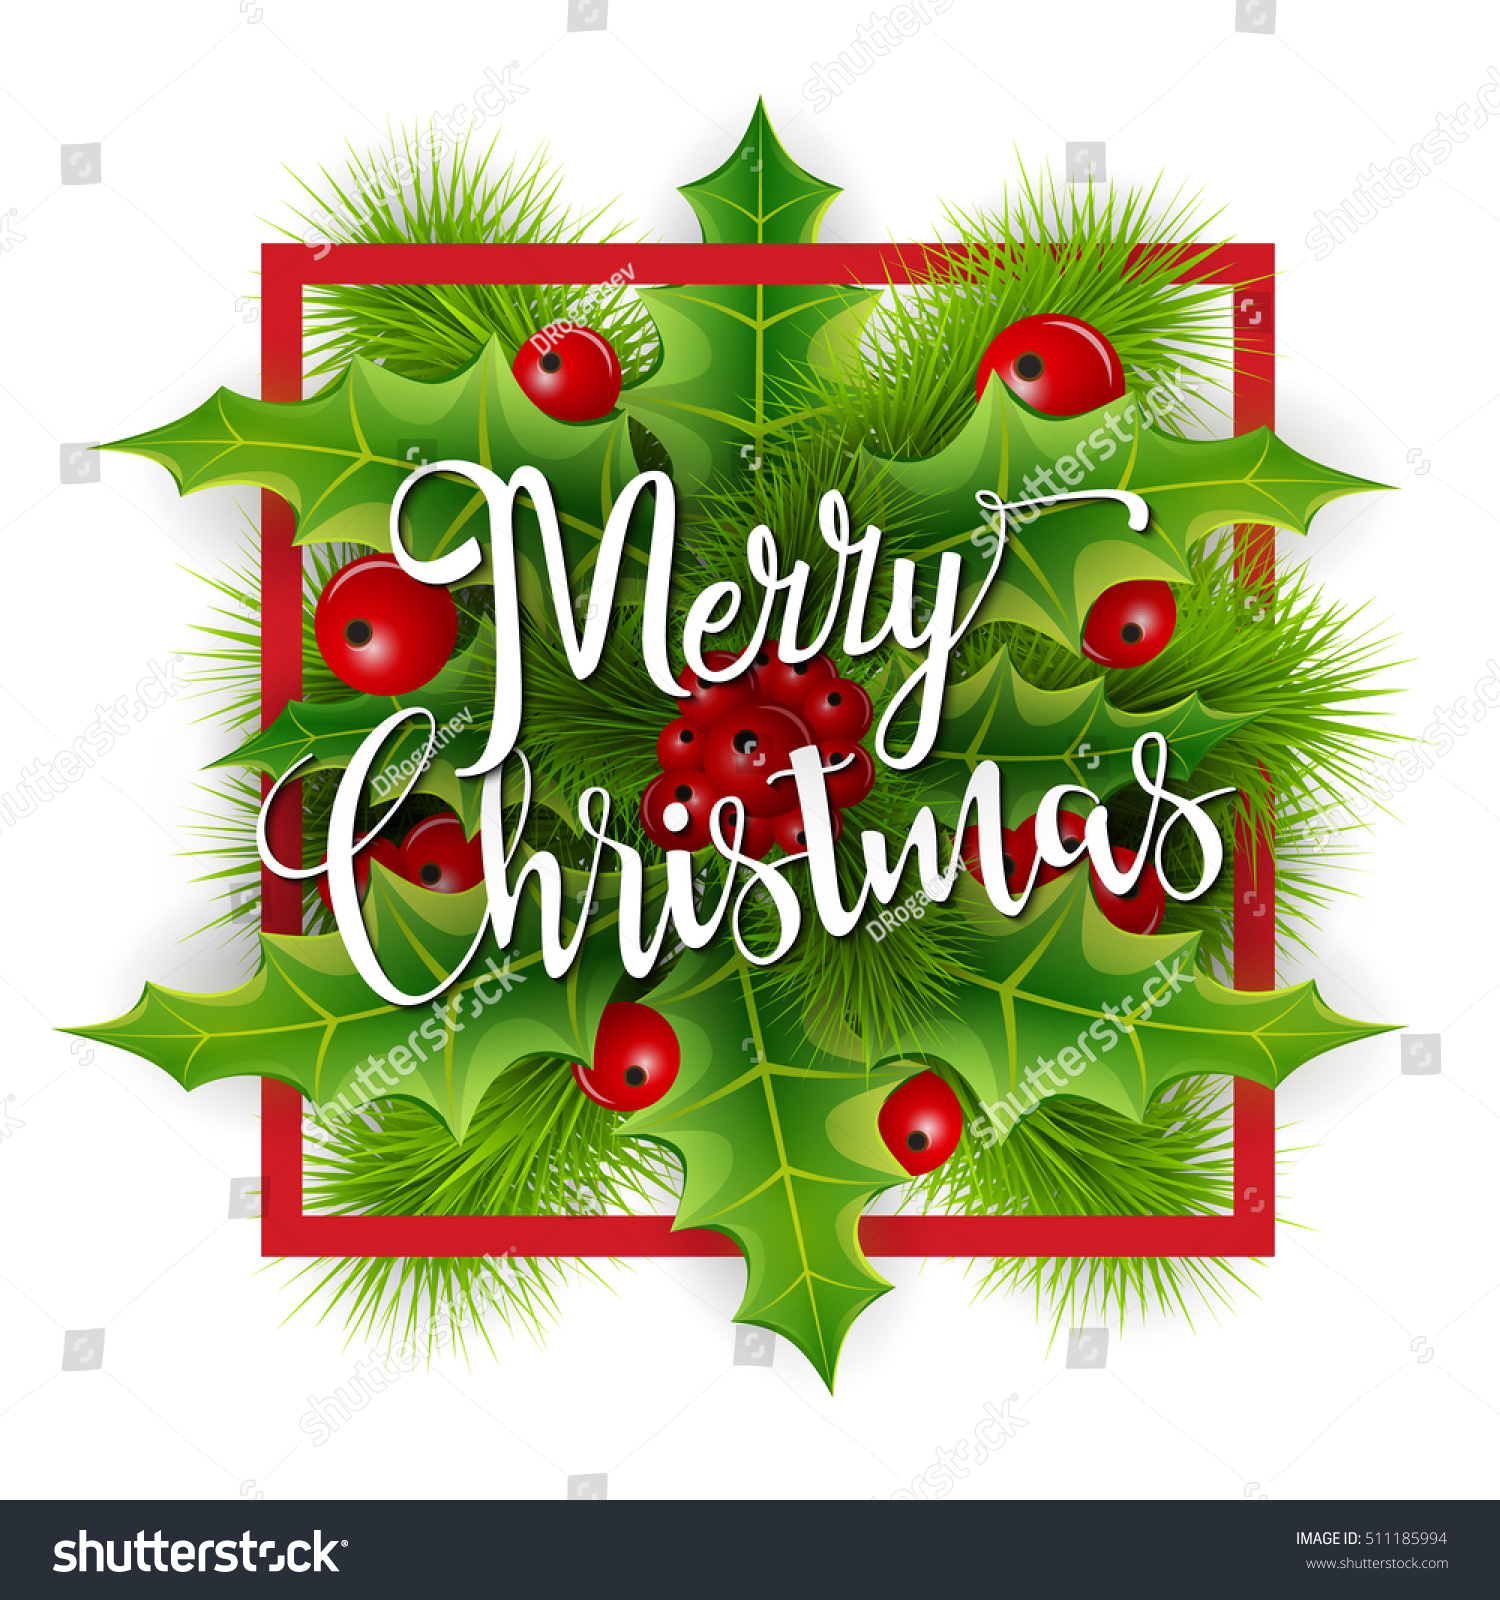 Christmas Greetings Letter Merry Ce